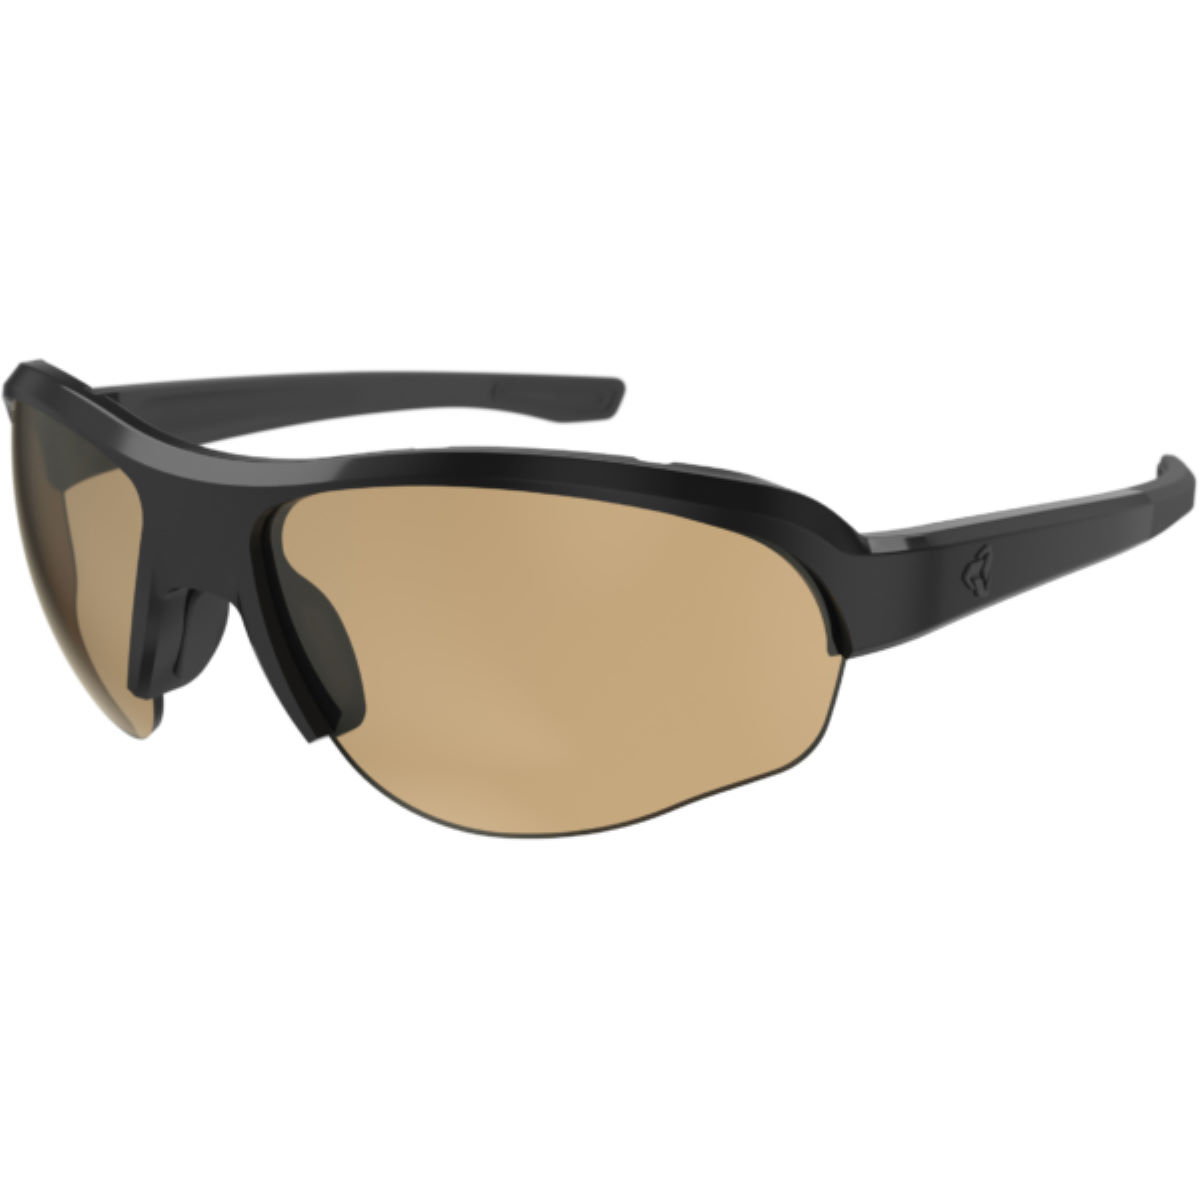 Ryders Eyewear Flume Photo Black/Light Brown Lens 71%-27%   Sunglasses